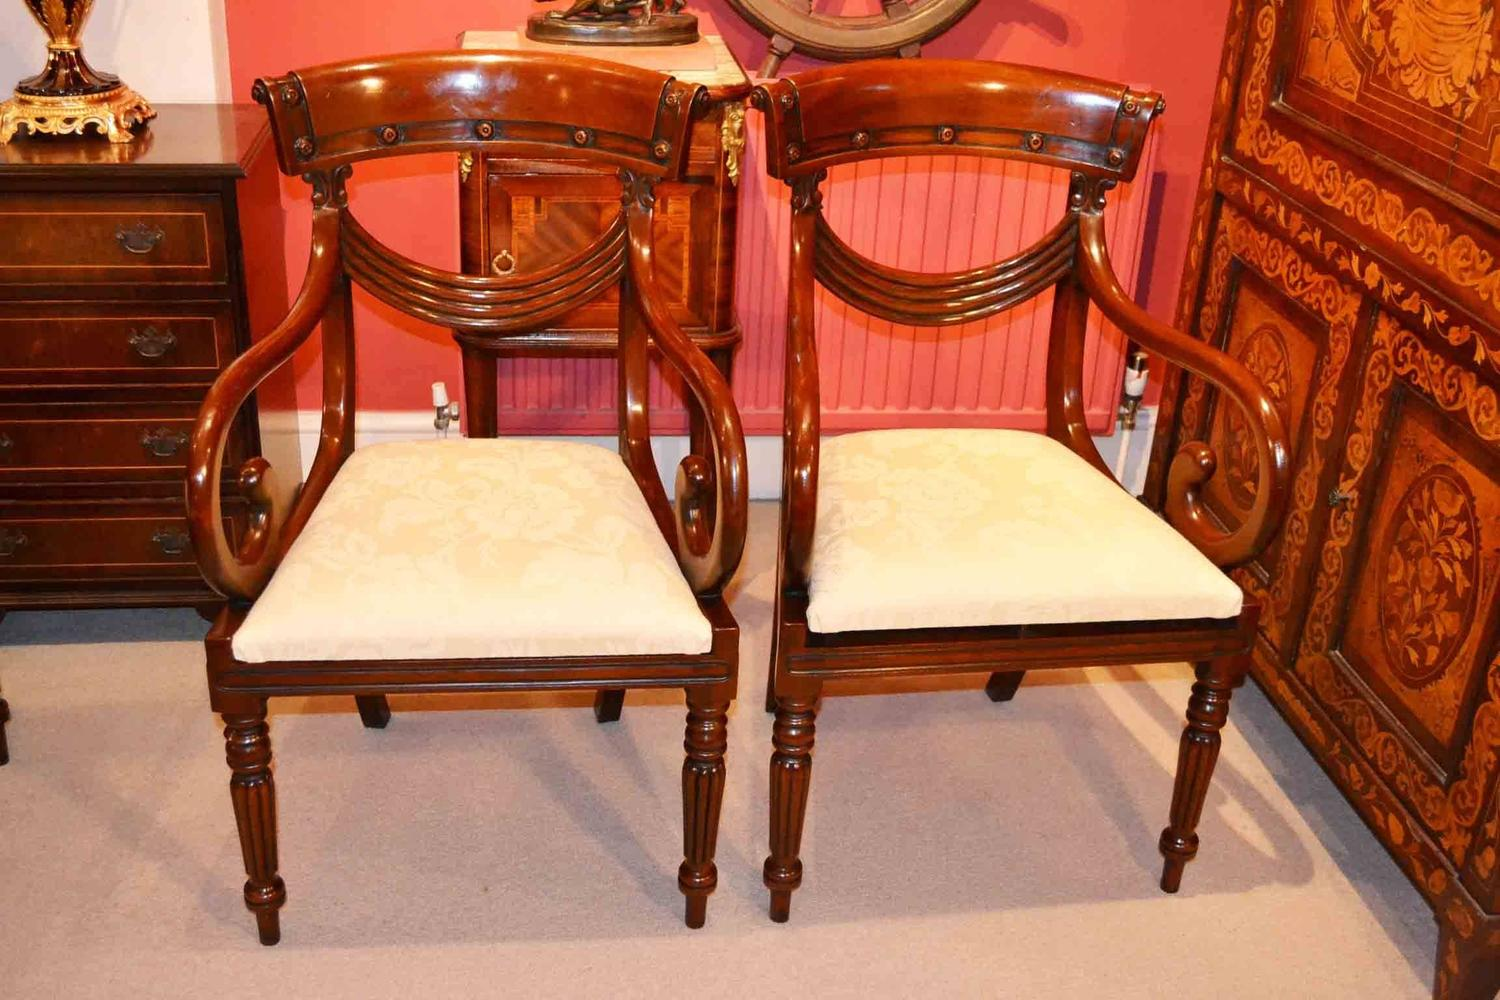 Grand set of 14 regency style drape dining chairs for sale at 1stdibs for Regency furniture living room sets